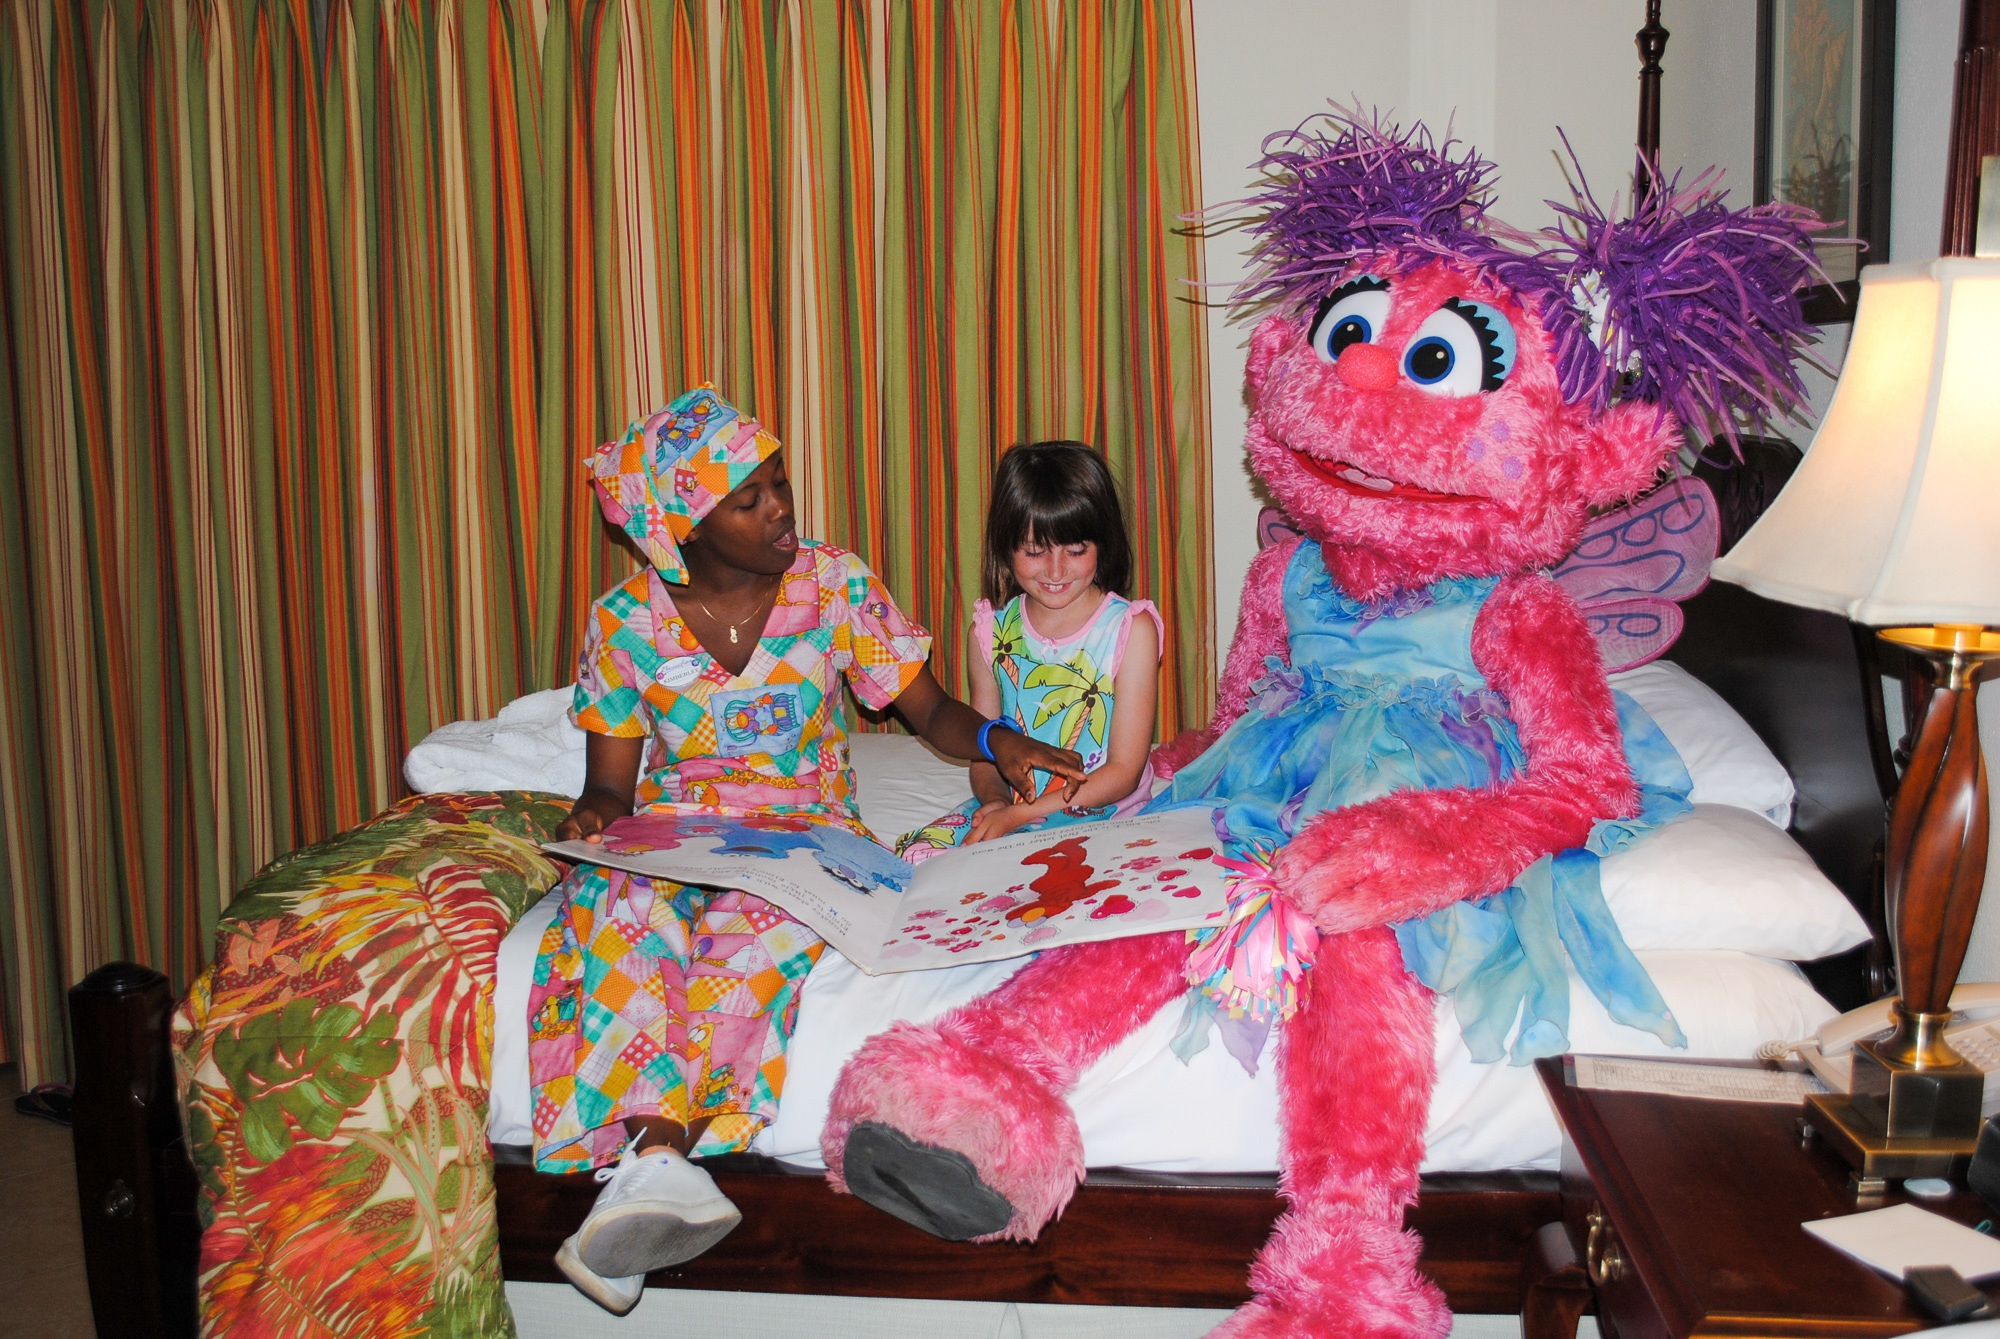 A bedtime character story and tuck-in with Sesame Street's Abby Caddabby